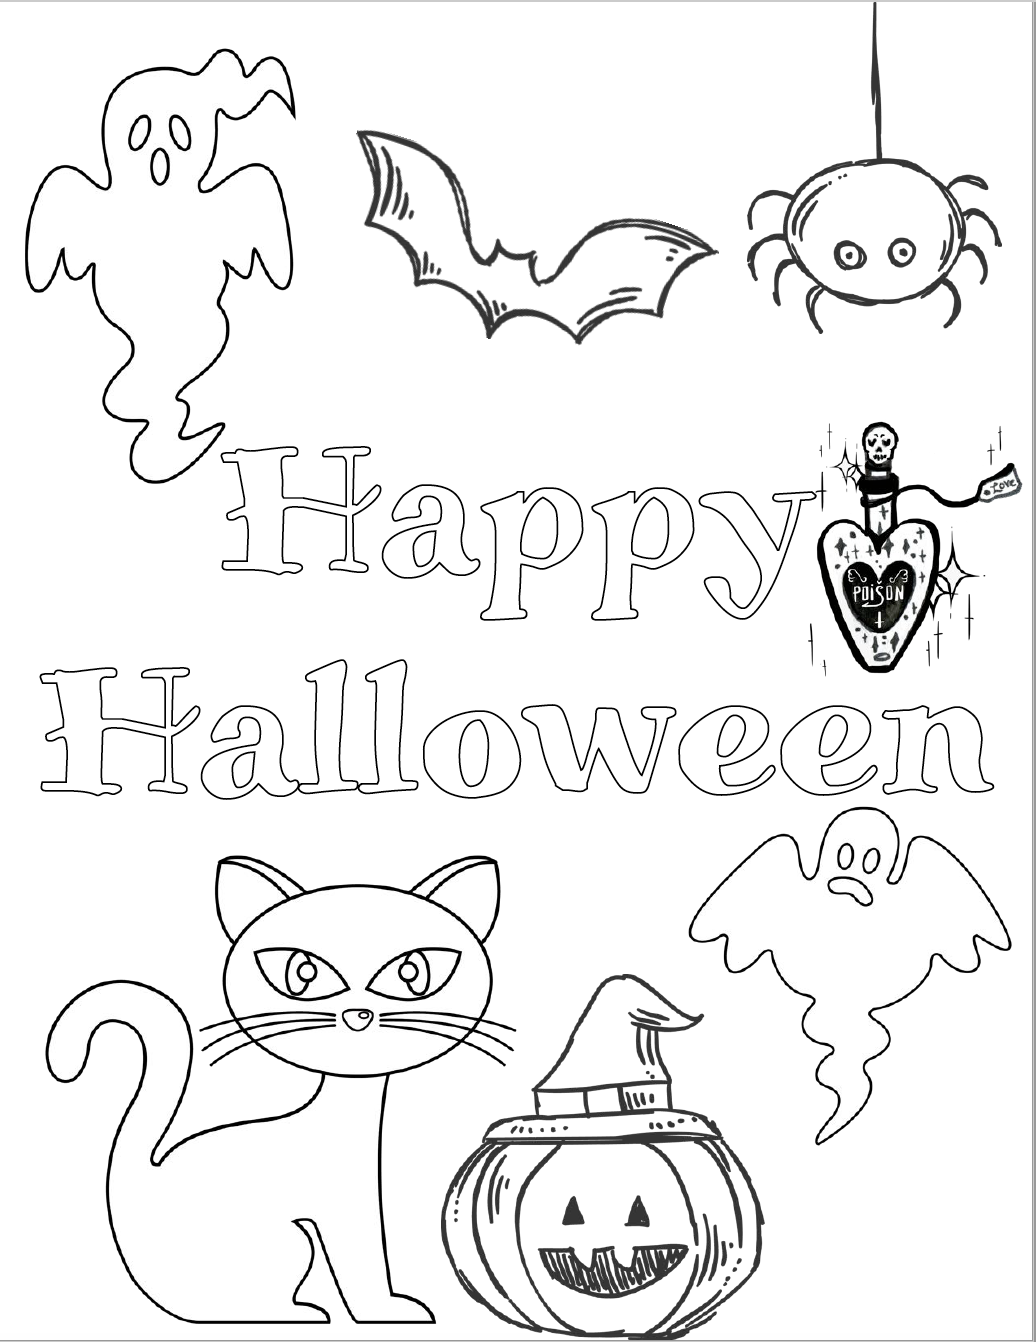 halloween printables coloring pages for kids | Free Halloween Printables